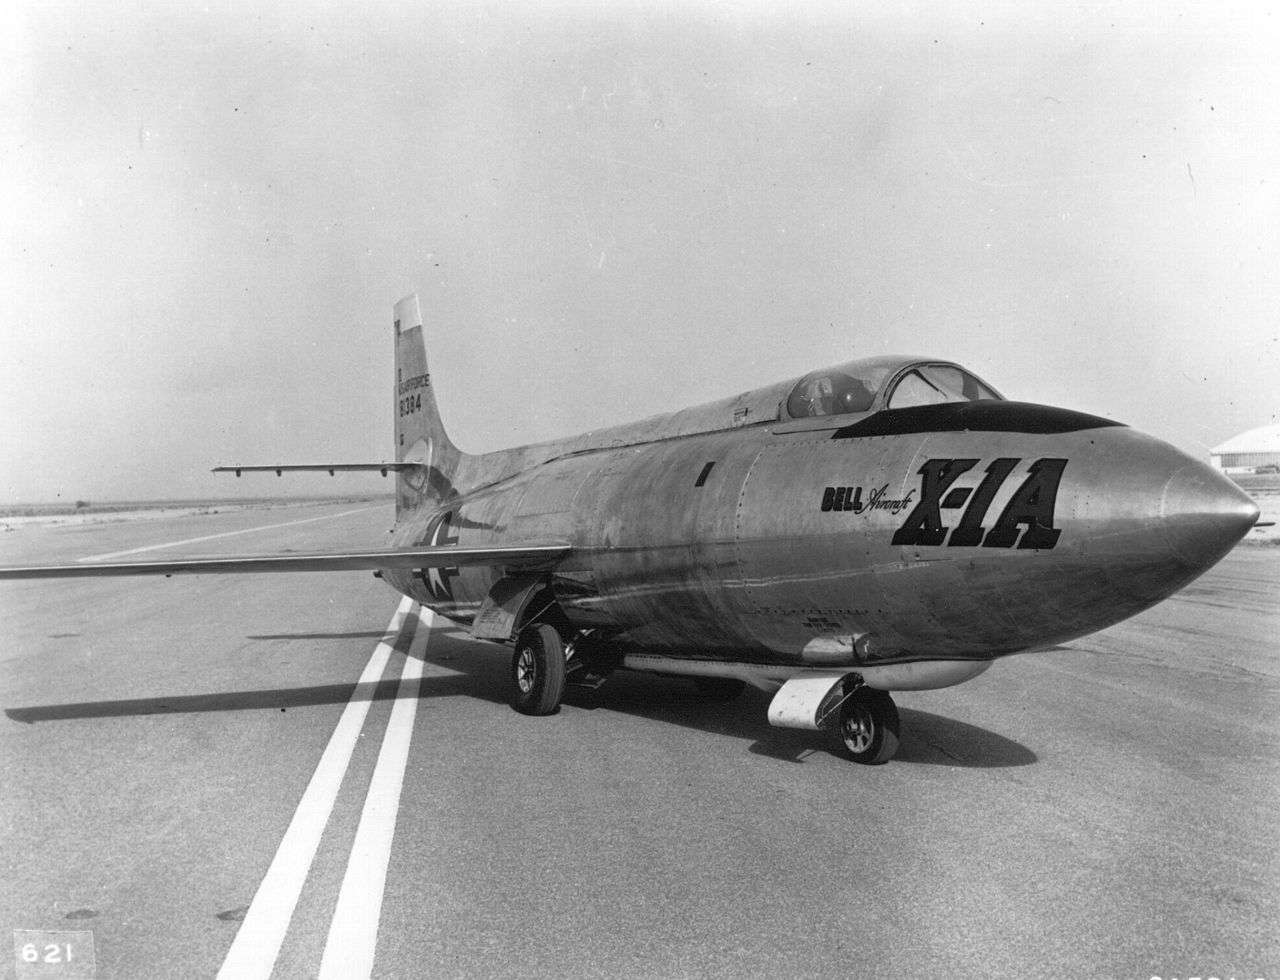 Bell X-1A parked on a runway.